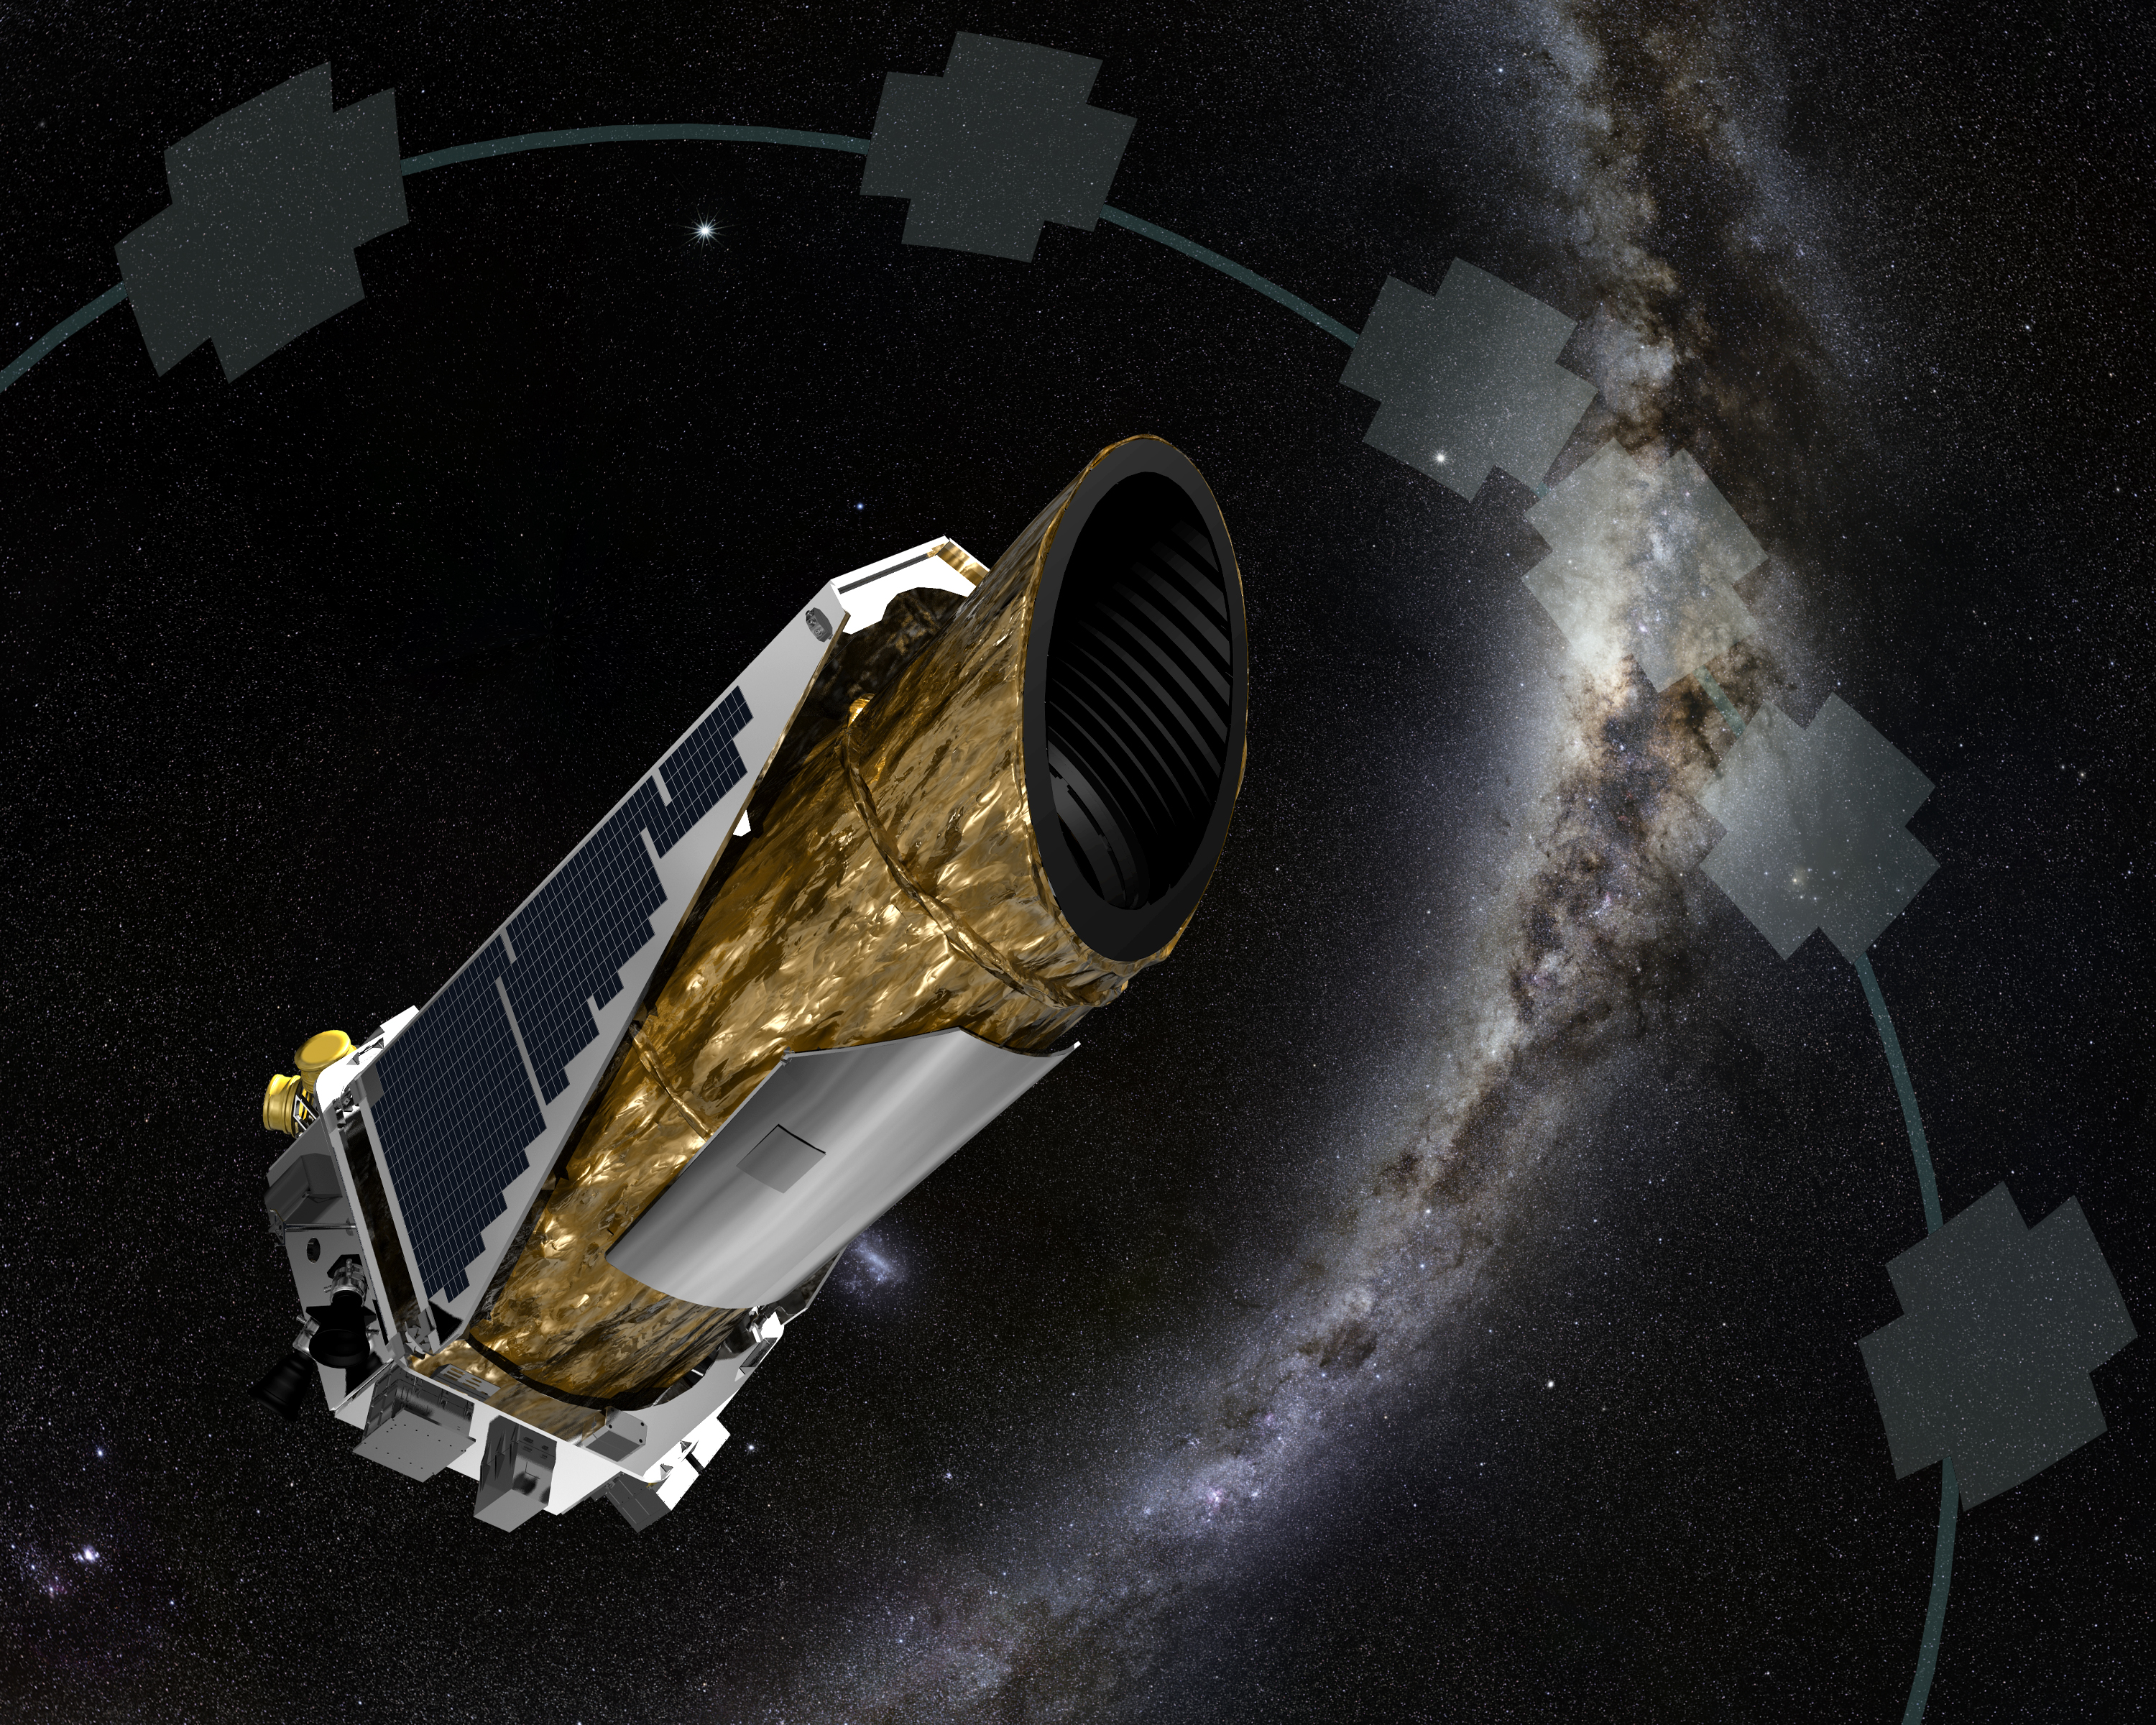 Kepler Spacecraft: Artist's Illustration